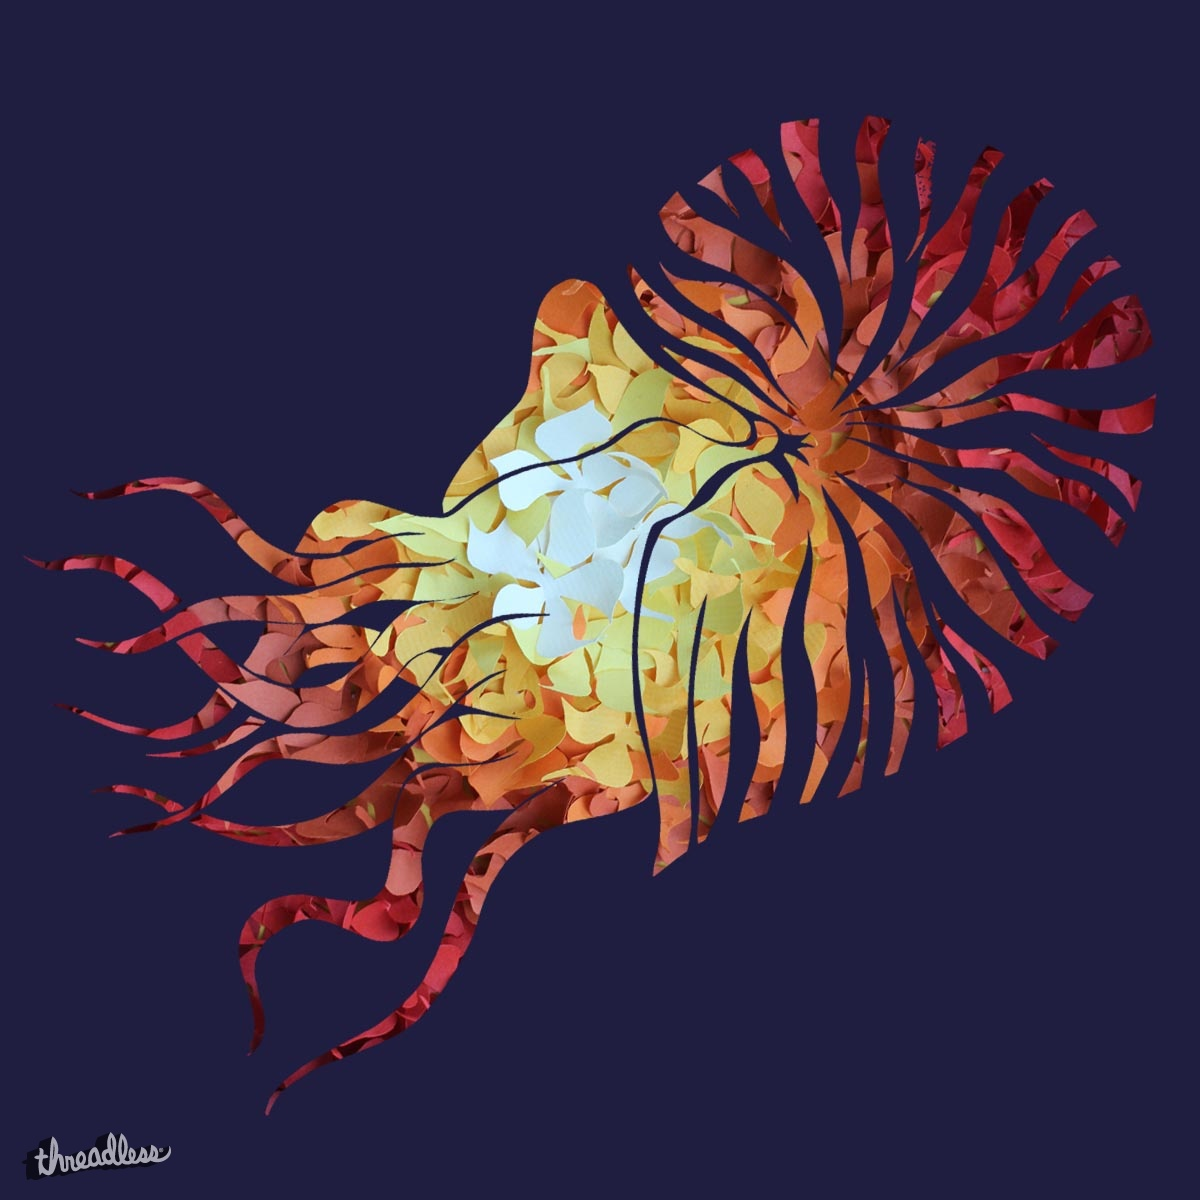 Nautilus, a cool t-shirt design